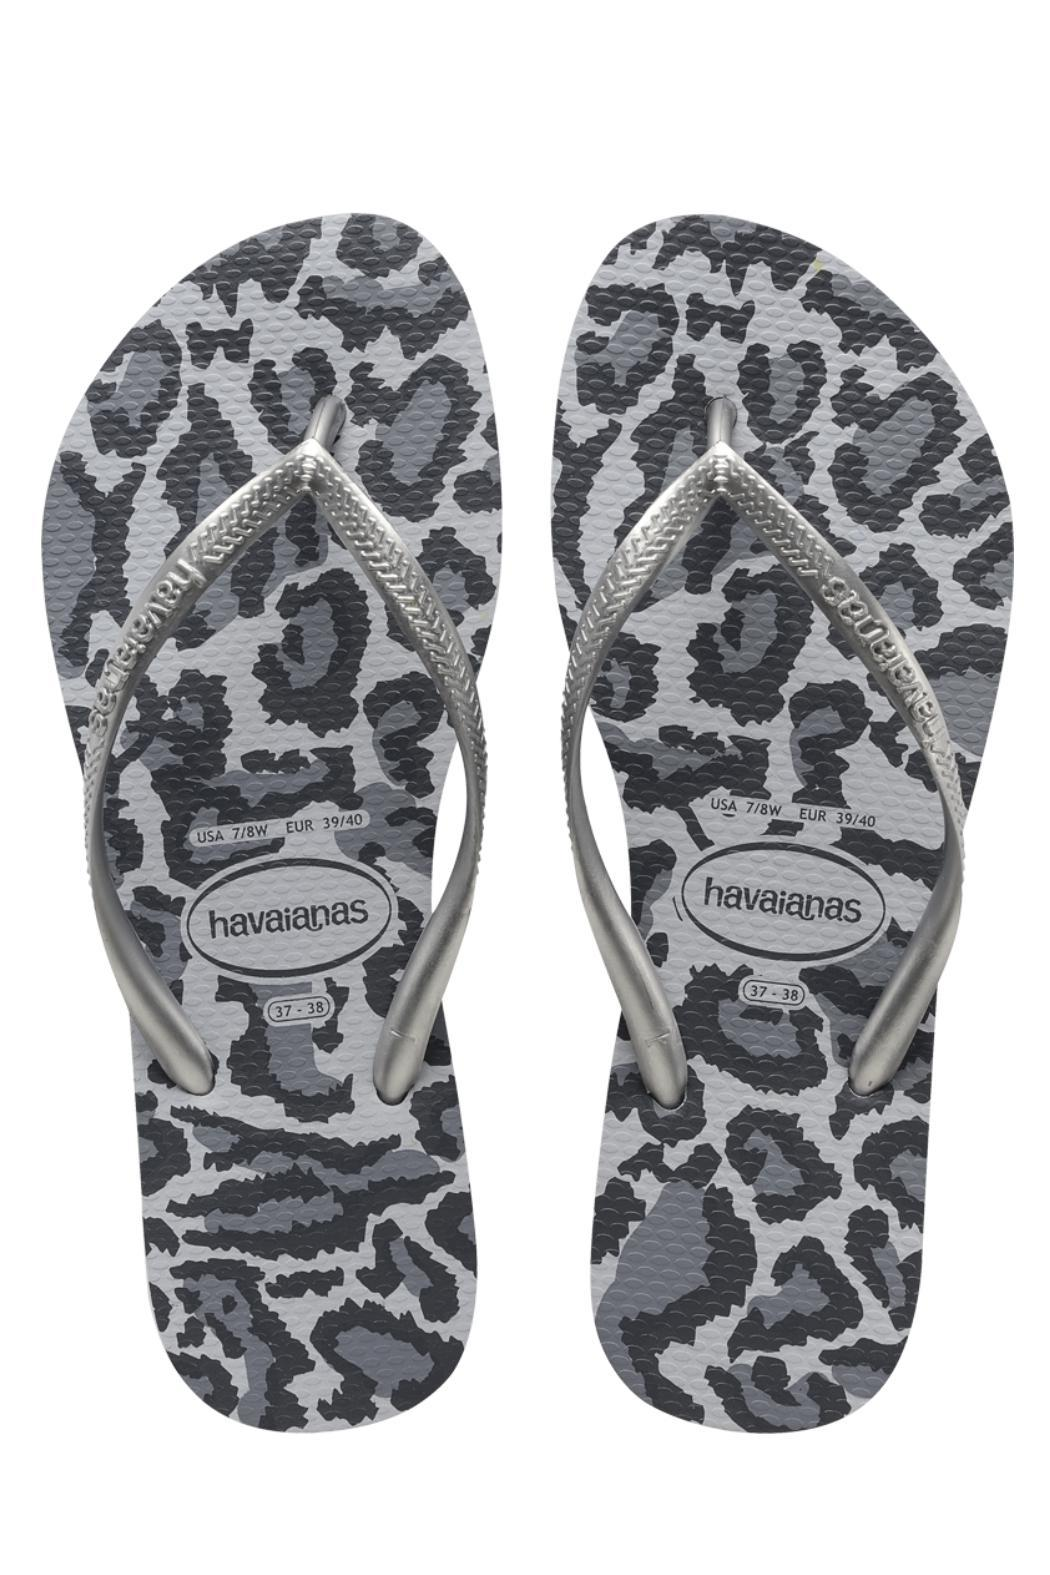 6b48a5640c25 Havaianas Slim Animal Flip-Flop from Florida by Jaffi s — Shoptiques